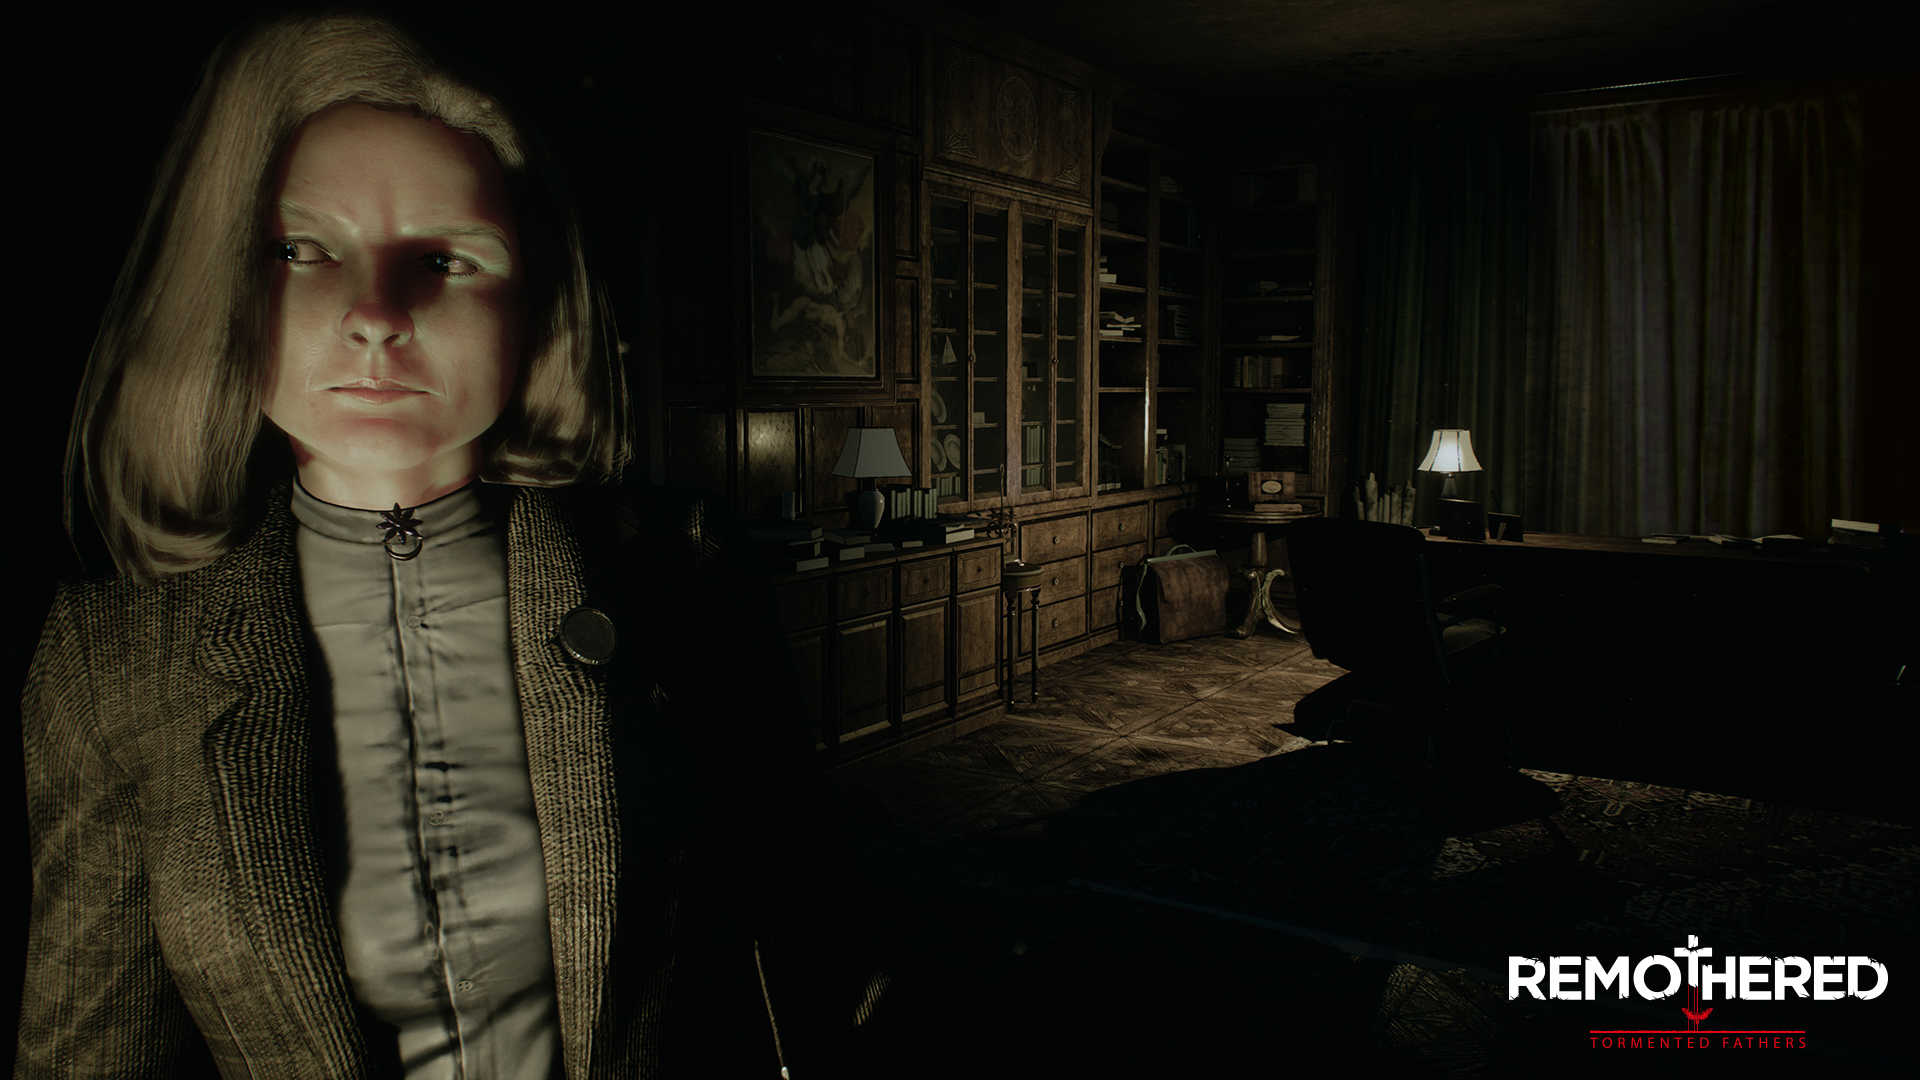 Remothered Tormented Fathers felton attack